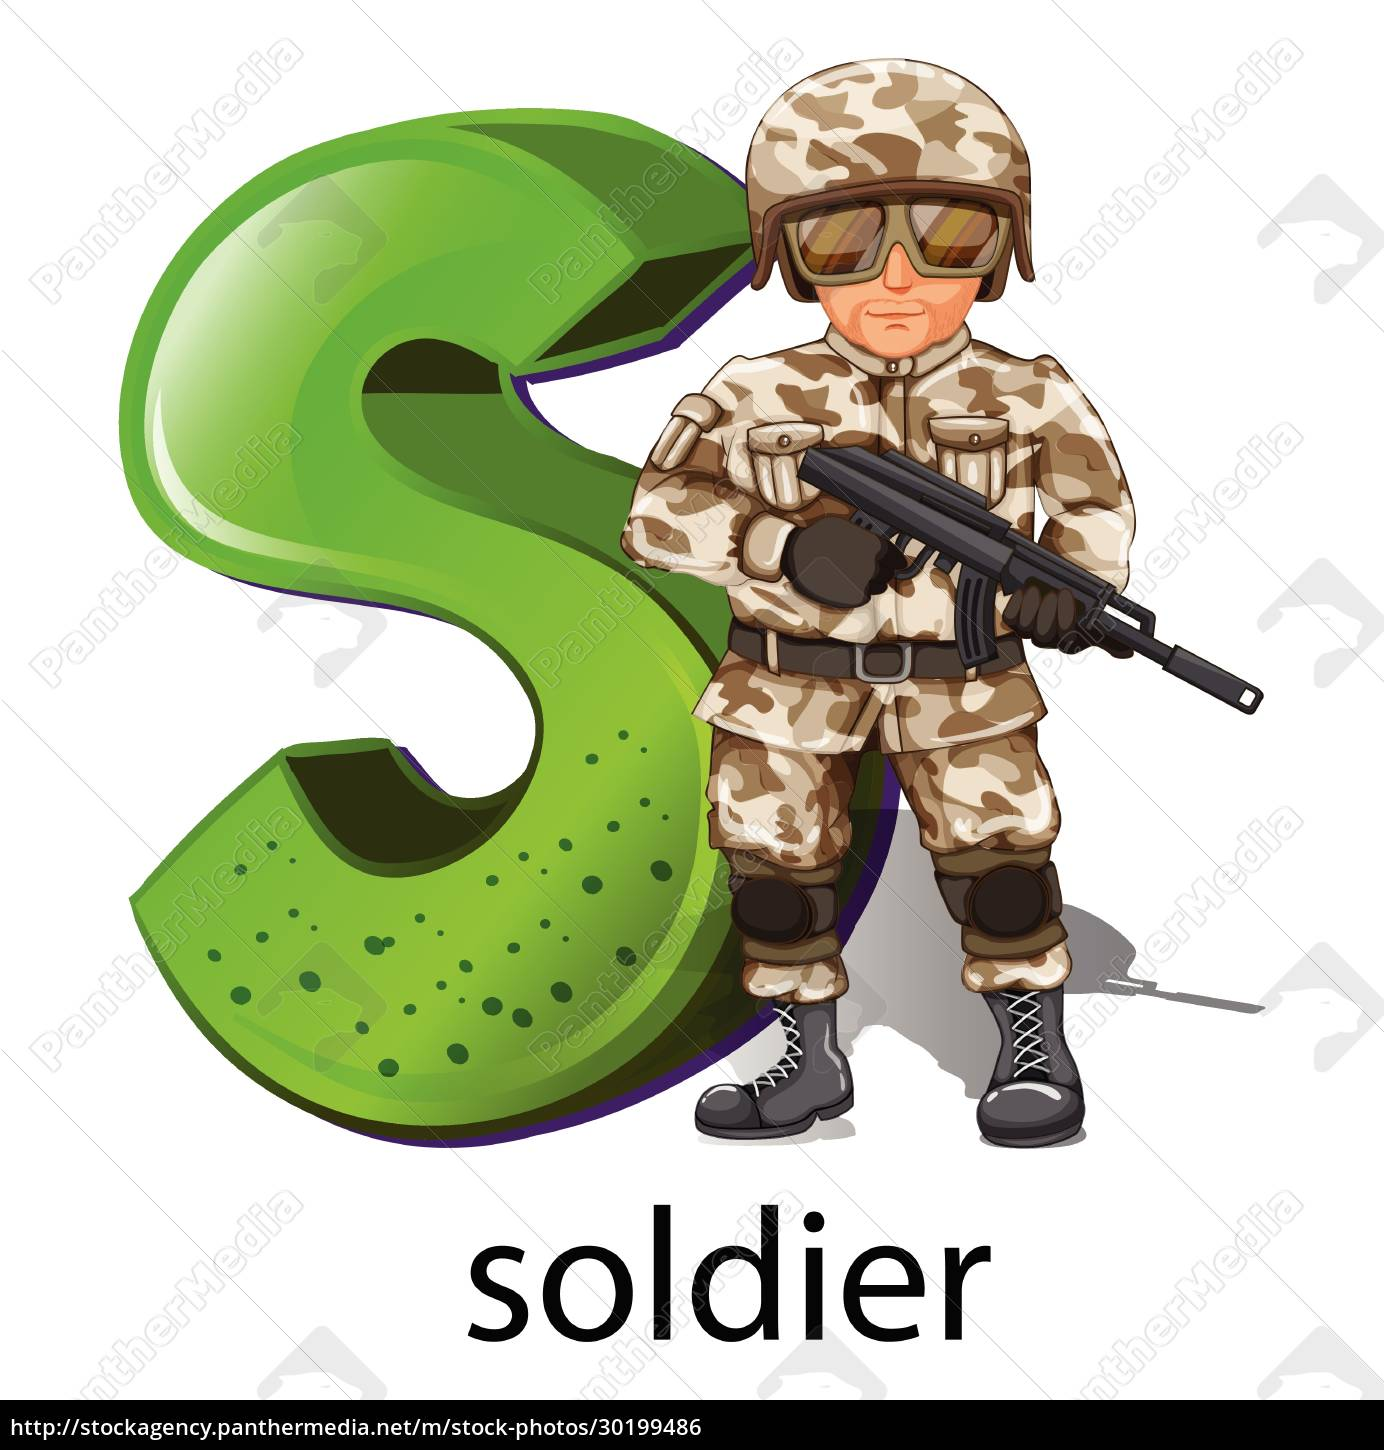 a, letter, s, for, soldier - 30199486